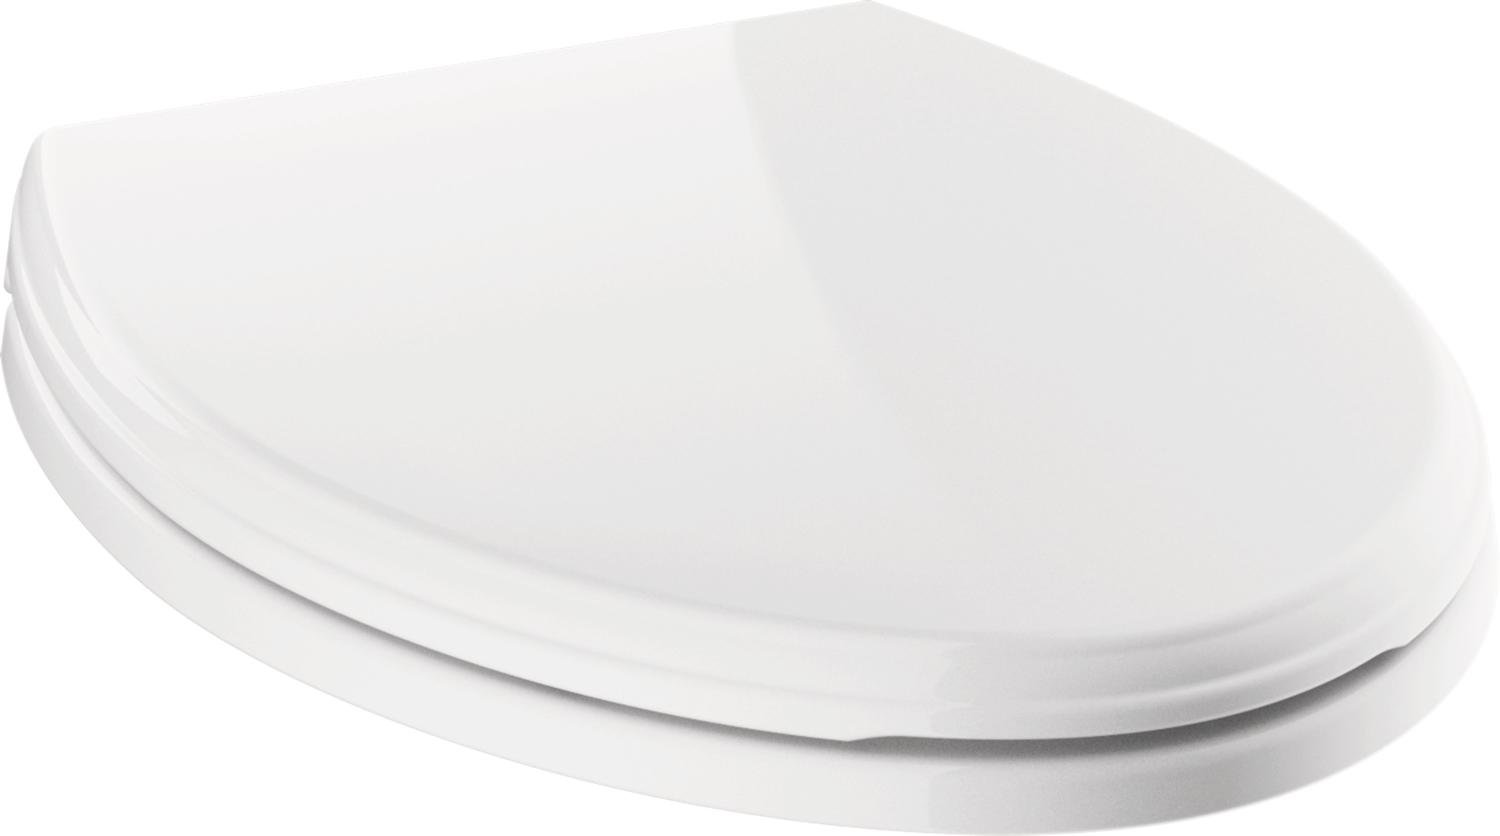 Delta Faucet 811901-WH Wycliffe Elongated Slow-Close Toilet Seat with Non-slip Seat Bumpers, White by DELTA FAUCET (Image #2)